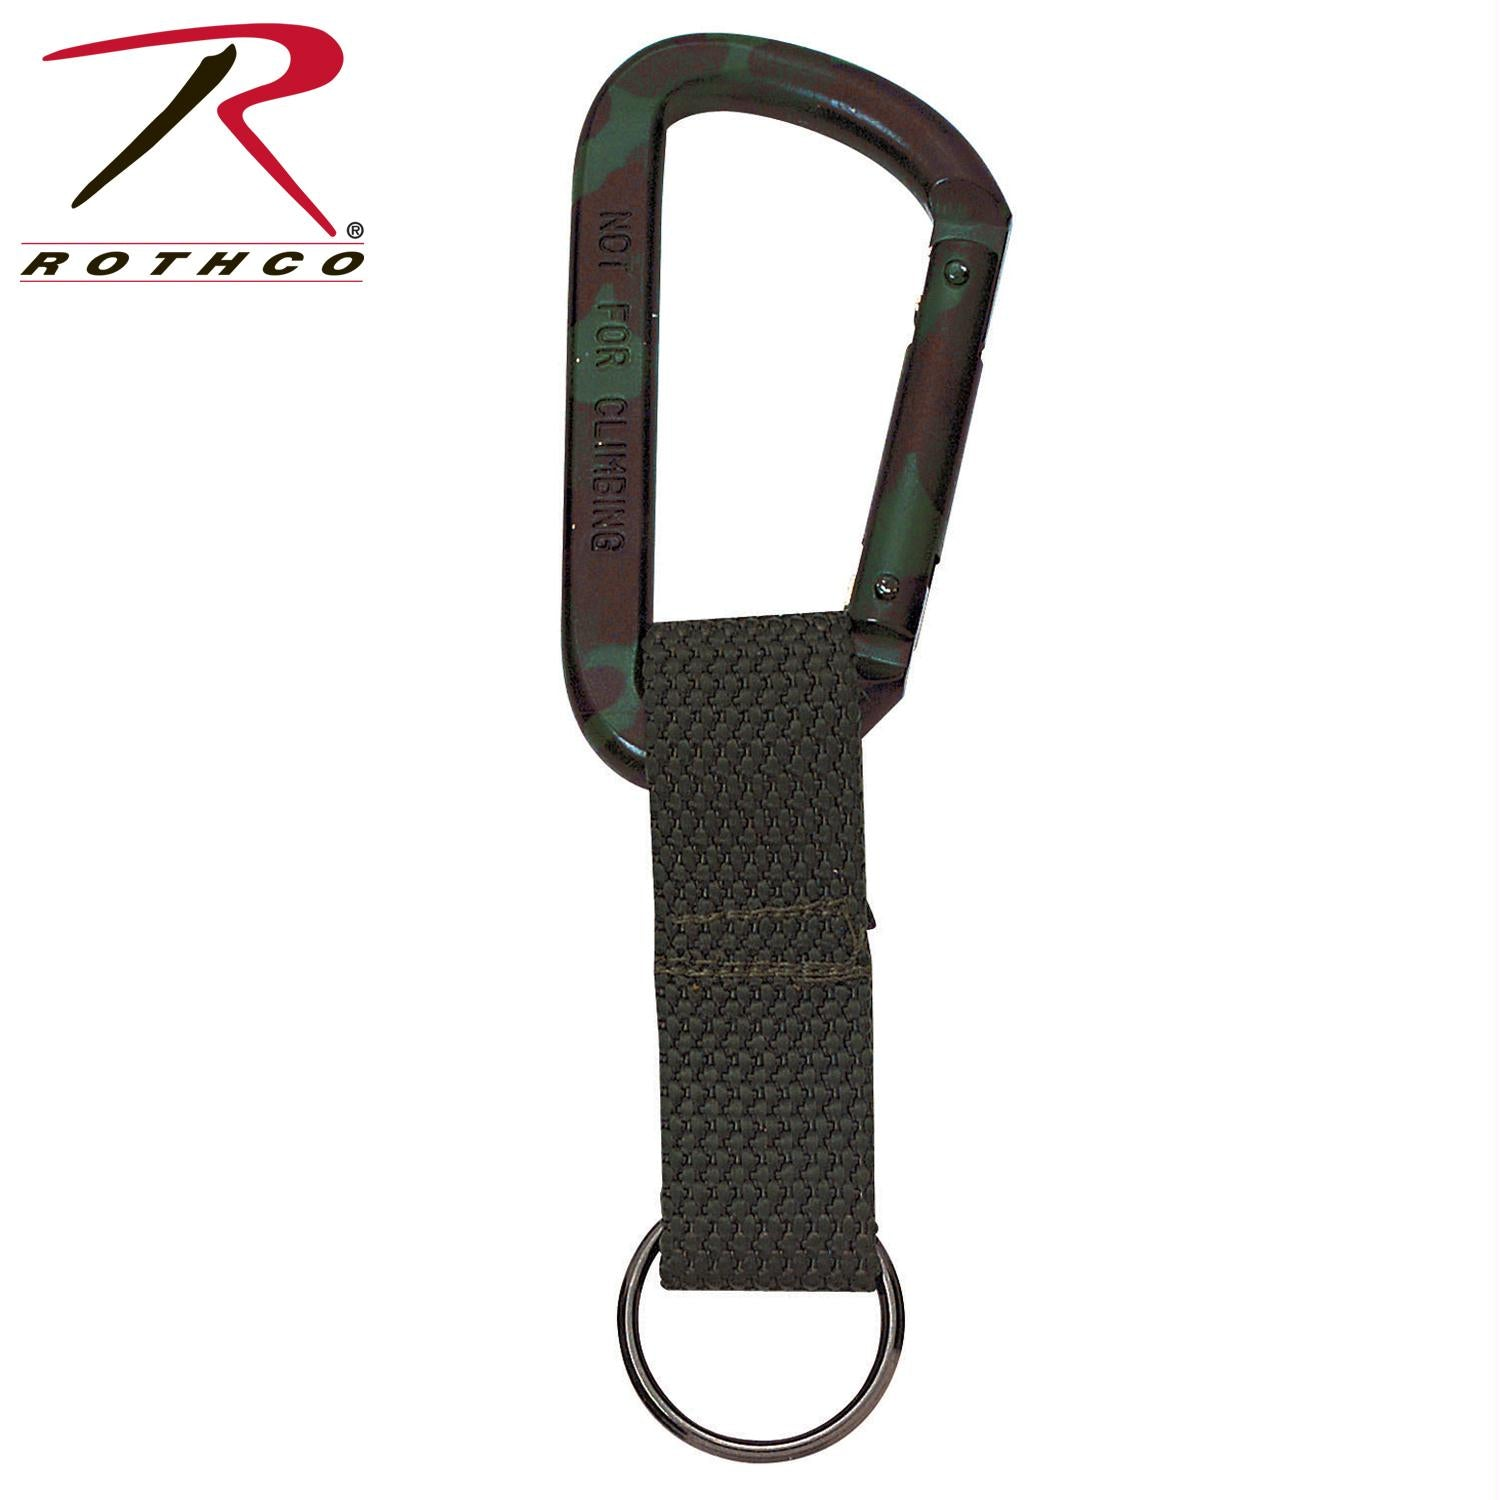 Rothco Jumbo 80MM Carabiner With Web Strap Key Ring - Woodland Camo